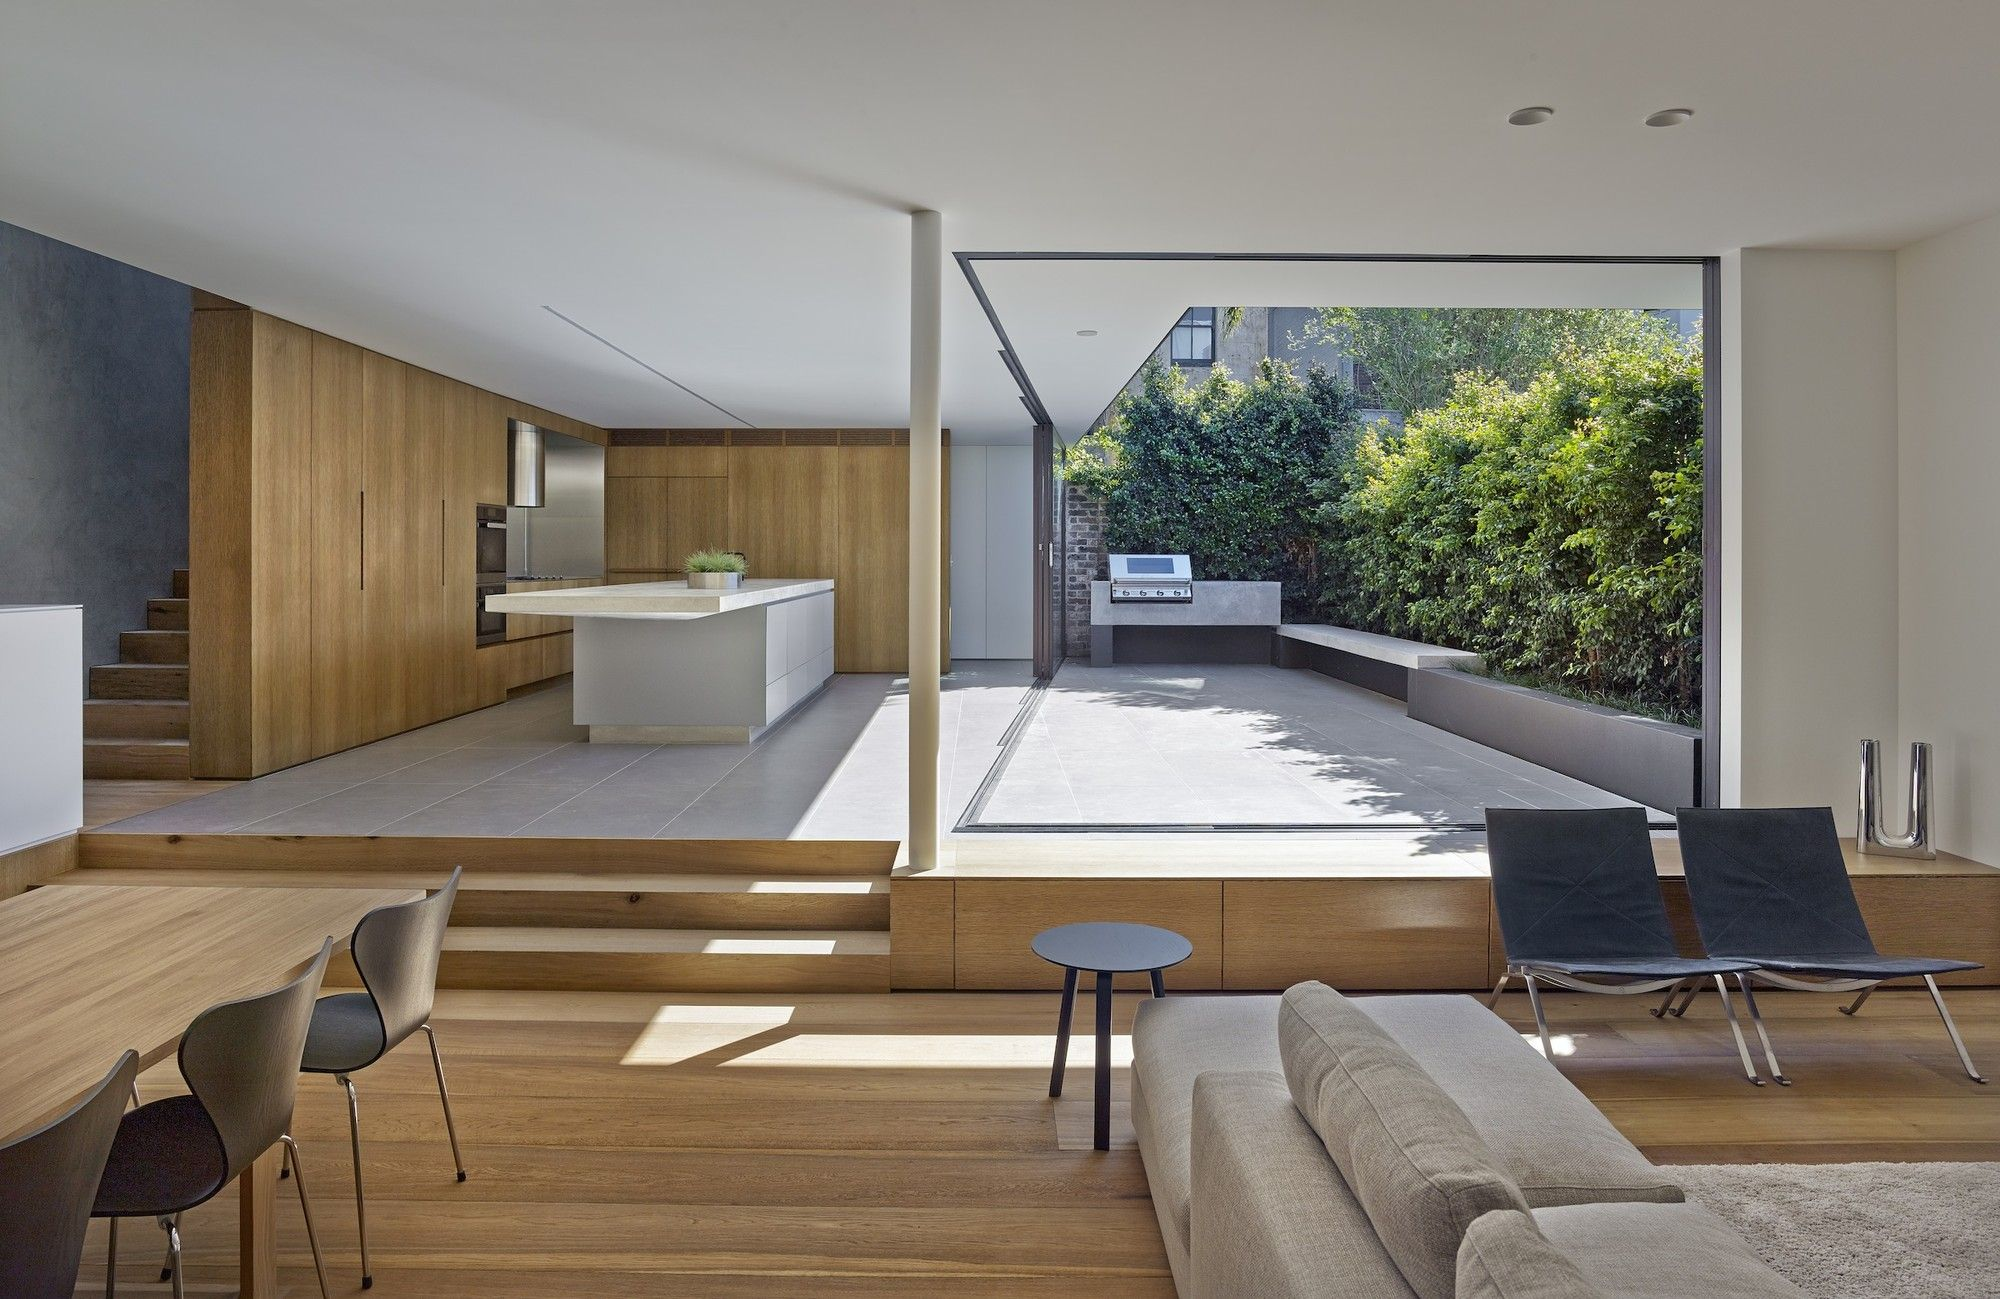 Image 1 of 20 from gallery of birchgrove house nobbs radford architects photograph by